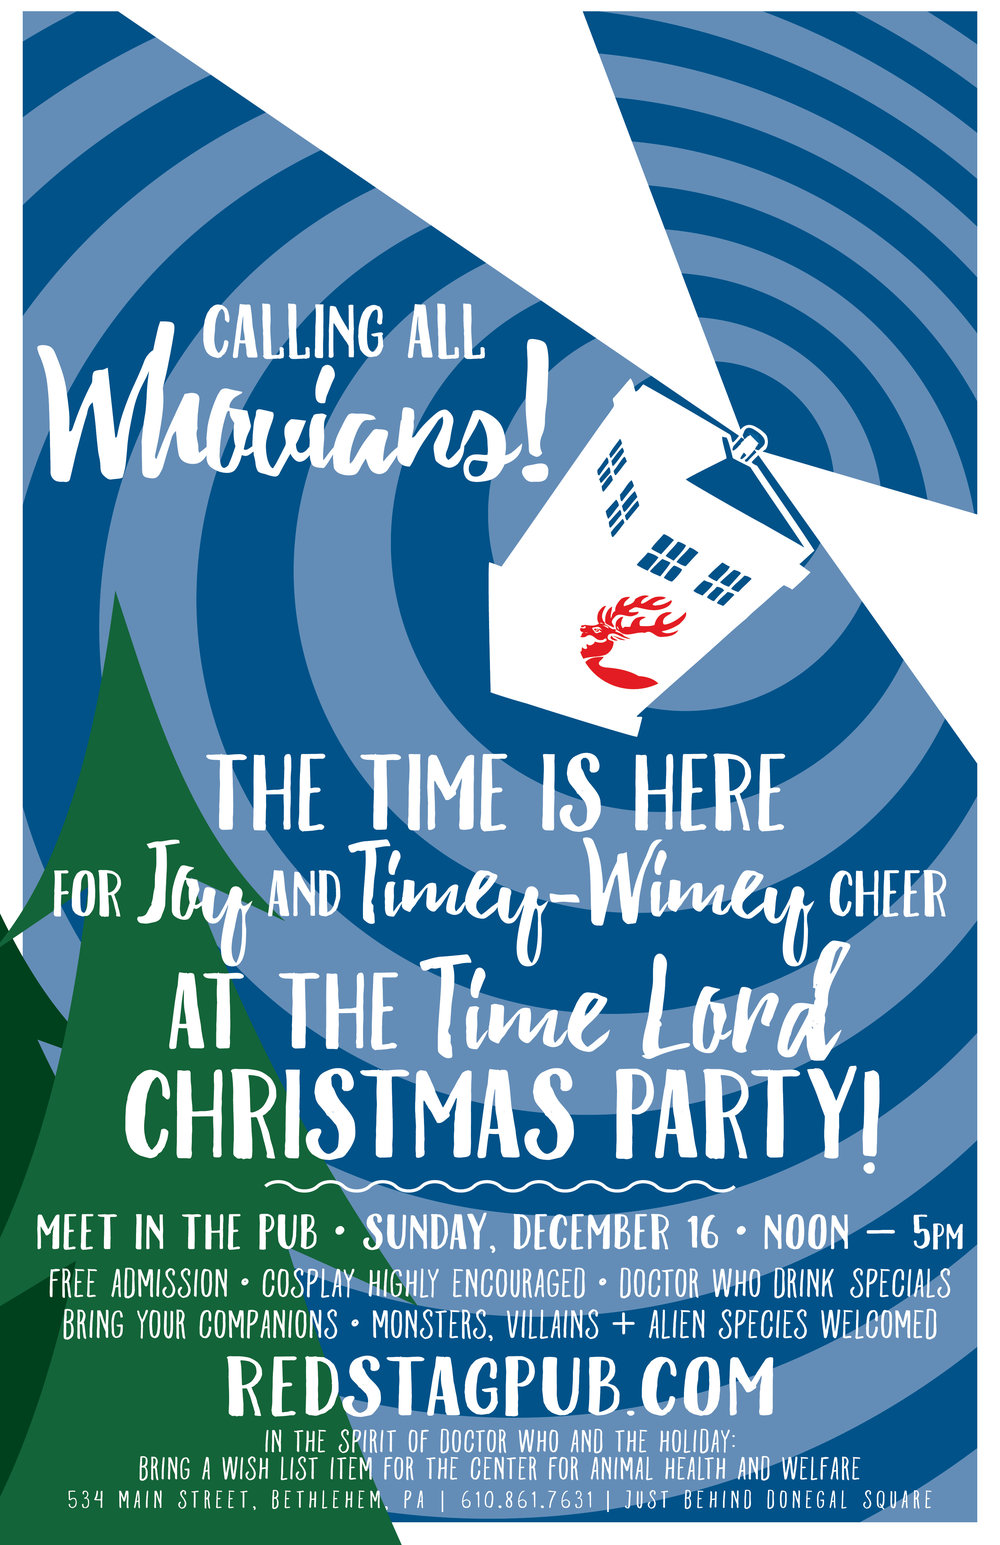 DOCTOR WHO CHRISTMAS PARTY • 11X17 POSTER FOR 2018  CLIENT: McCARTHY'S RED STAG PUB AND WHISKEY BAR BRIEF: Self generated, as I organized the event - Attract Whovians (fans of Doctor Who) to a themed dinner. WORK: Adobe Illustrator + Indesign